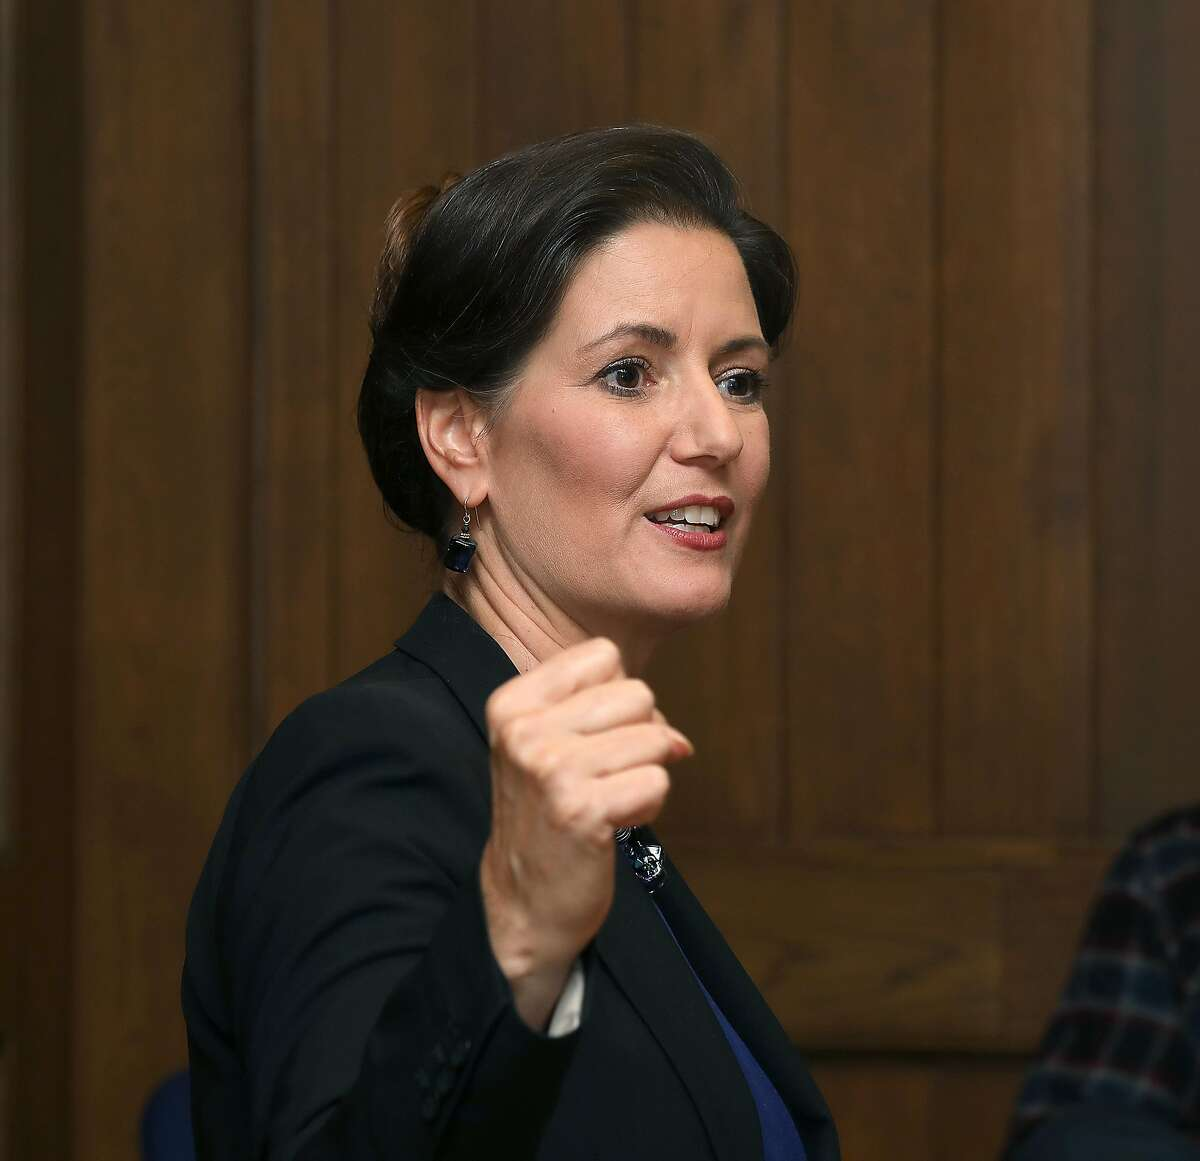 Oakland Mayor Libby Schaaf's order came in response to a Chronicle story revealing the practice, which legal experts said was highly unusual.